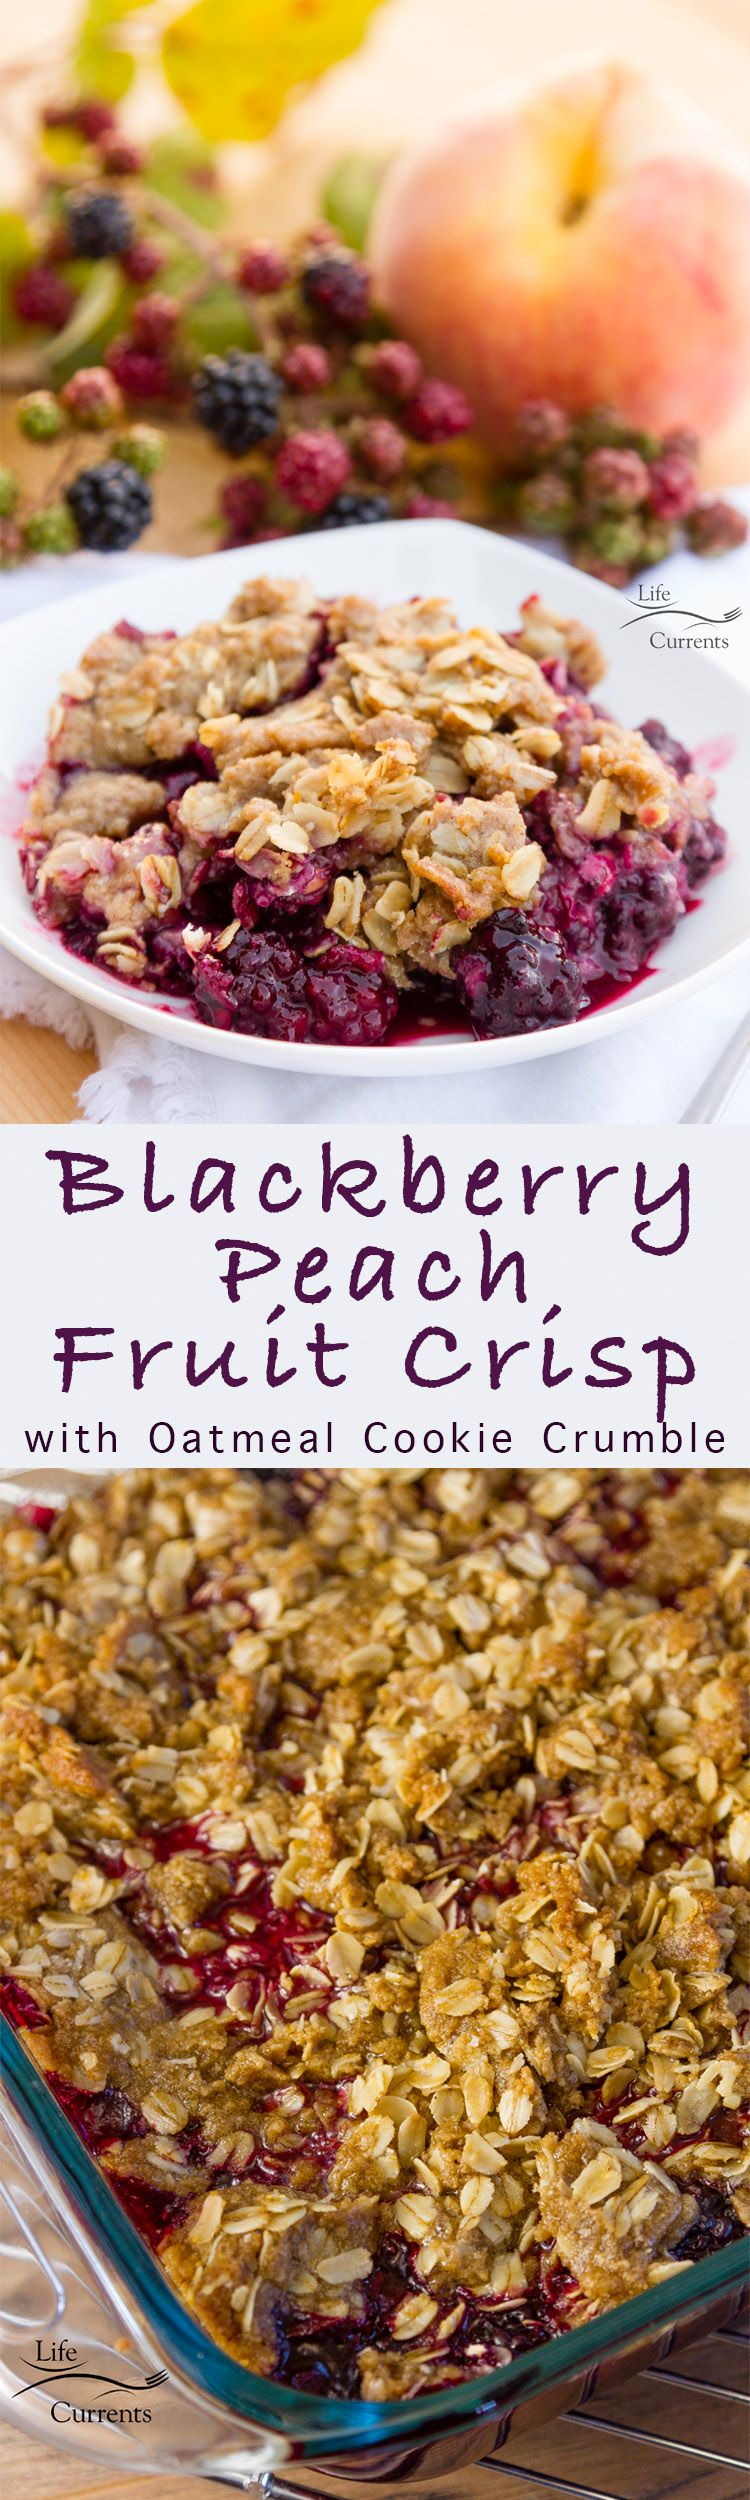 Blackberry Peach Fruit Crisp with Oatmeal Cookie Crumble - a dessert or breakfast that's loaded with fruit & topped with delicious brown sugar streusel